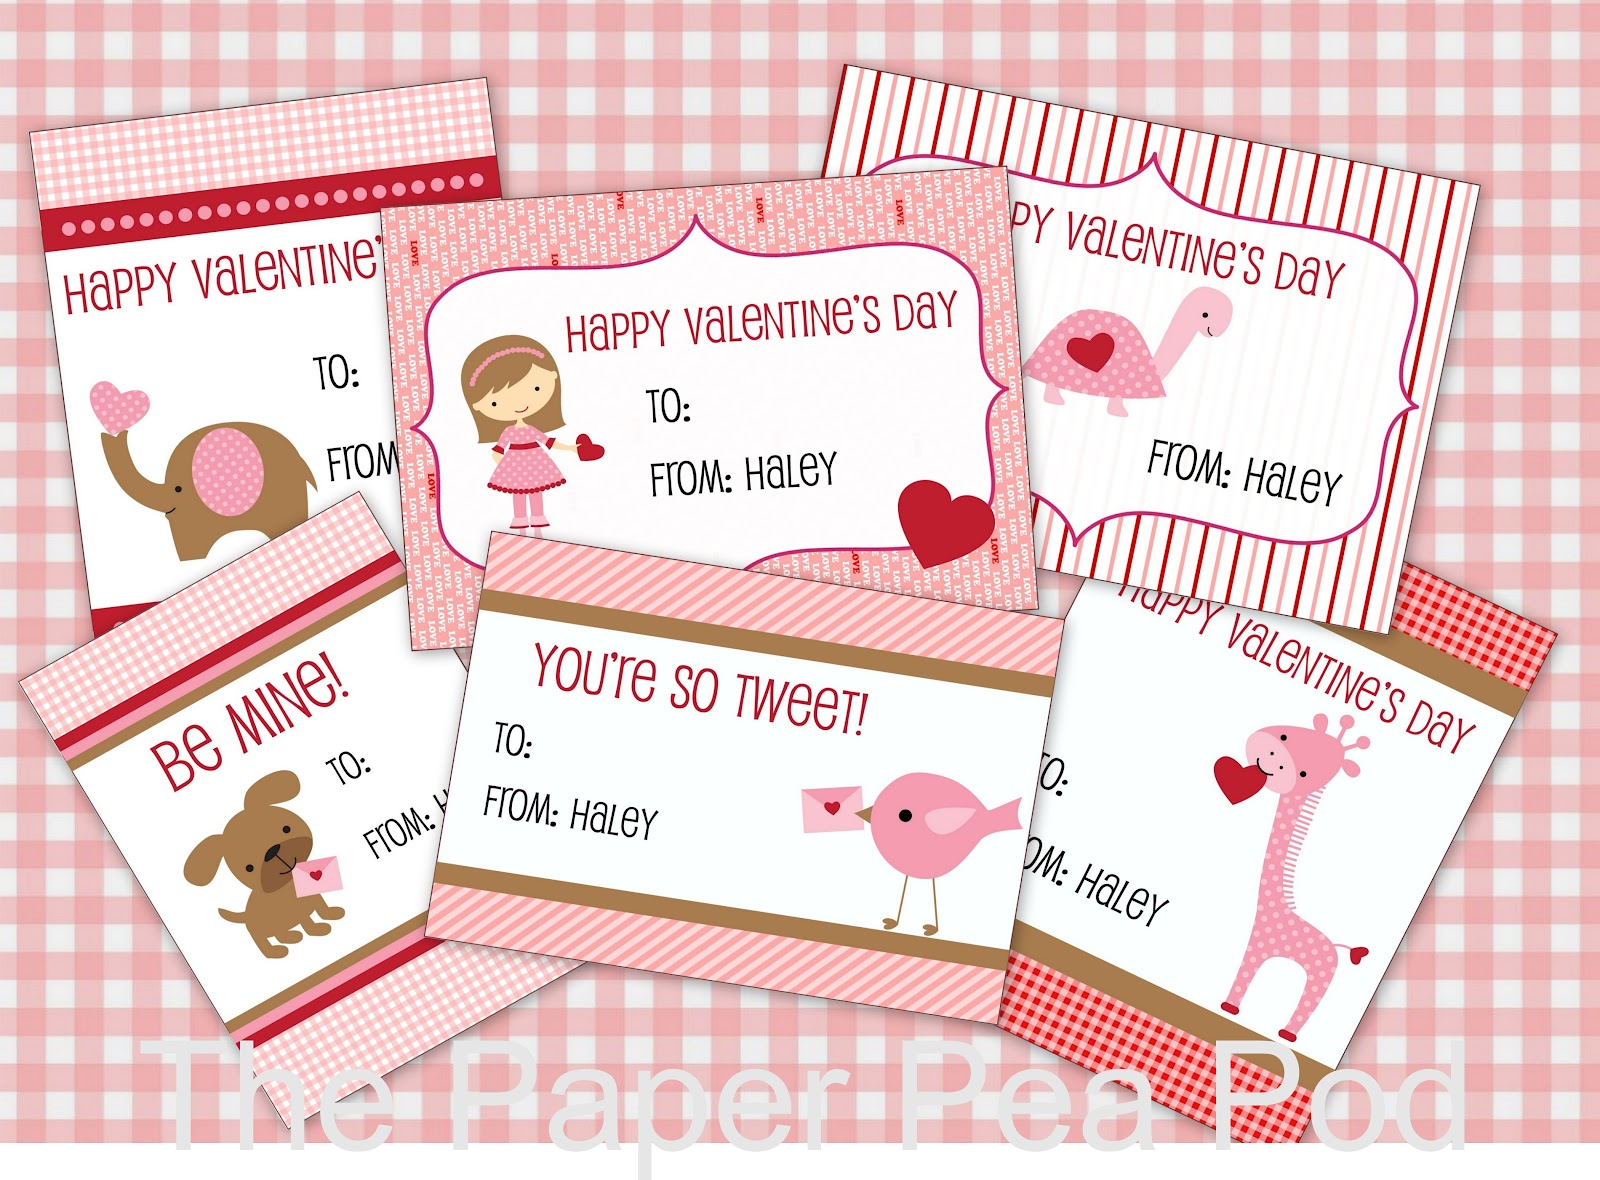 Valentines+Day+cards+(7)